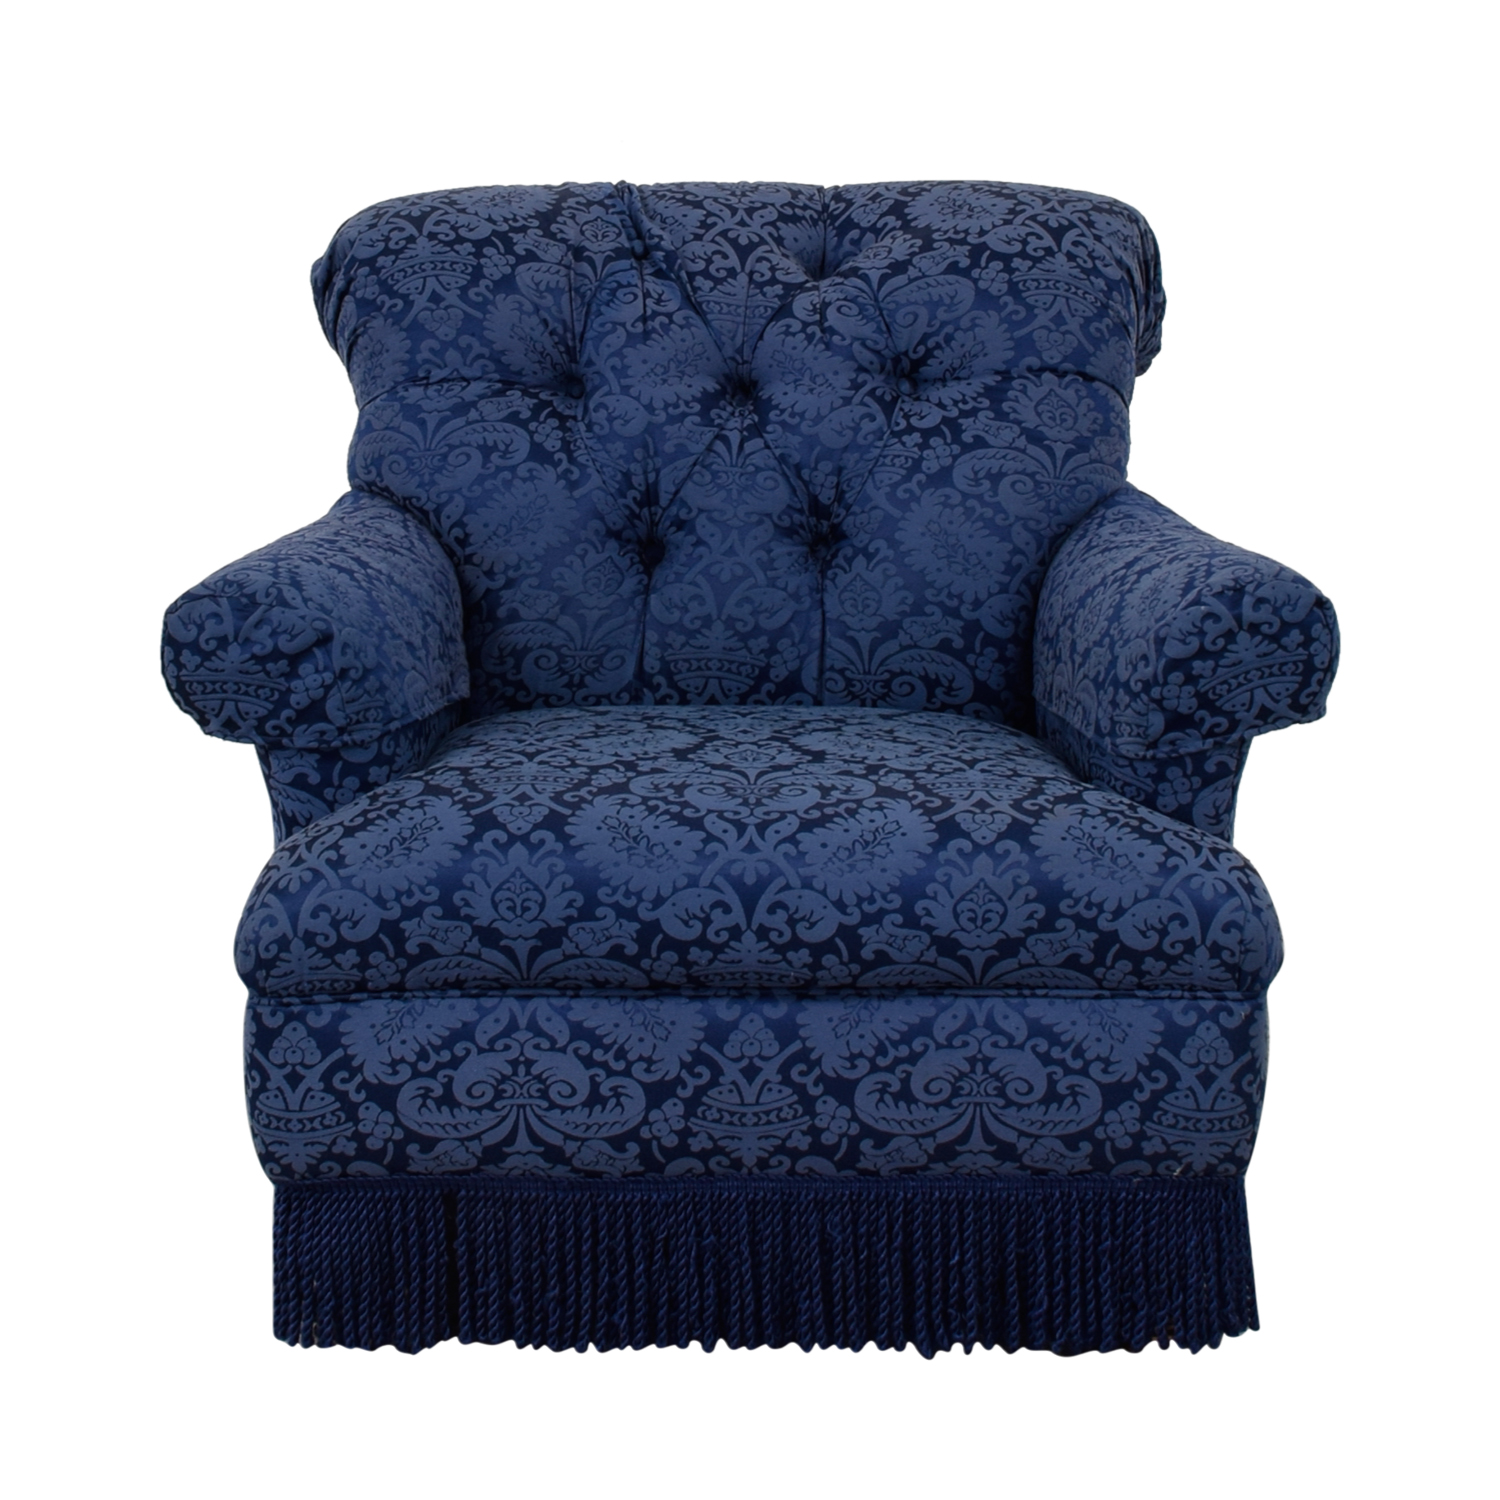 Ralph Lauren Ralph Lauren Blue Tufted Club Chair Chairs ...